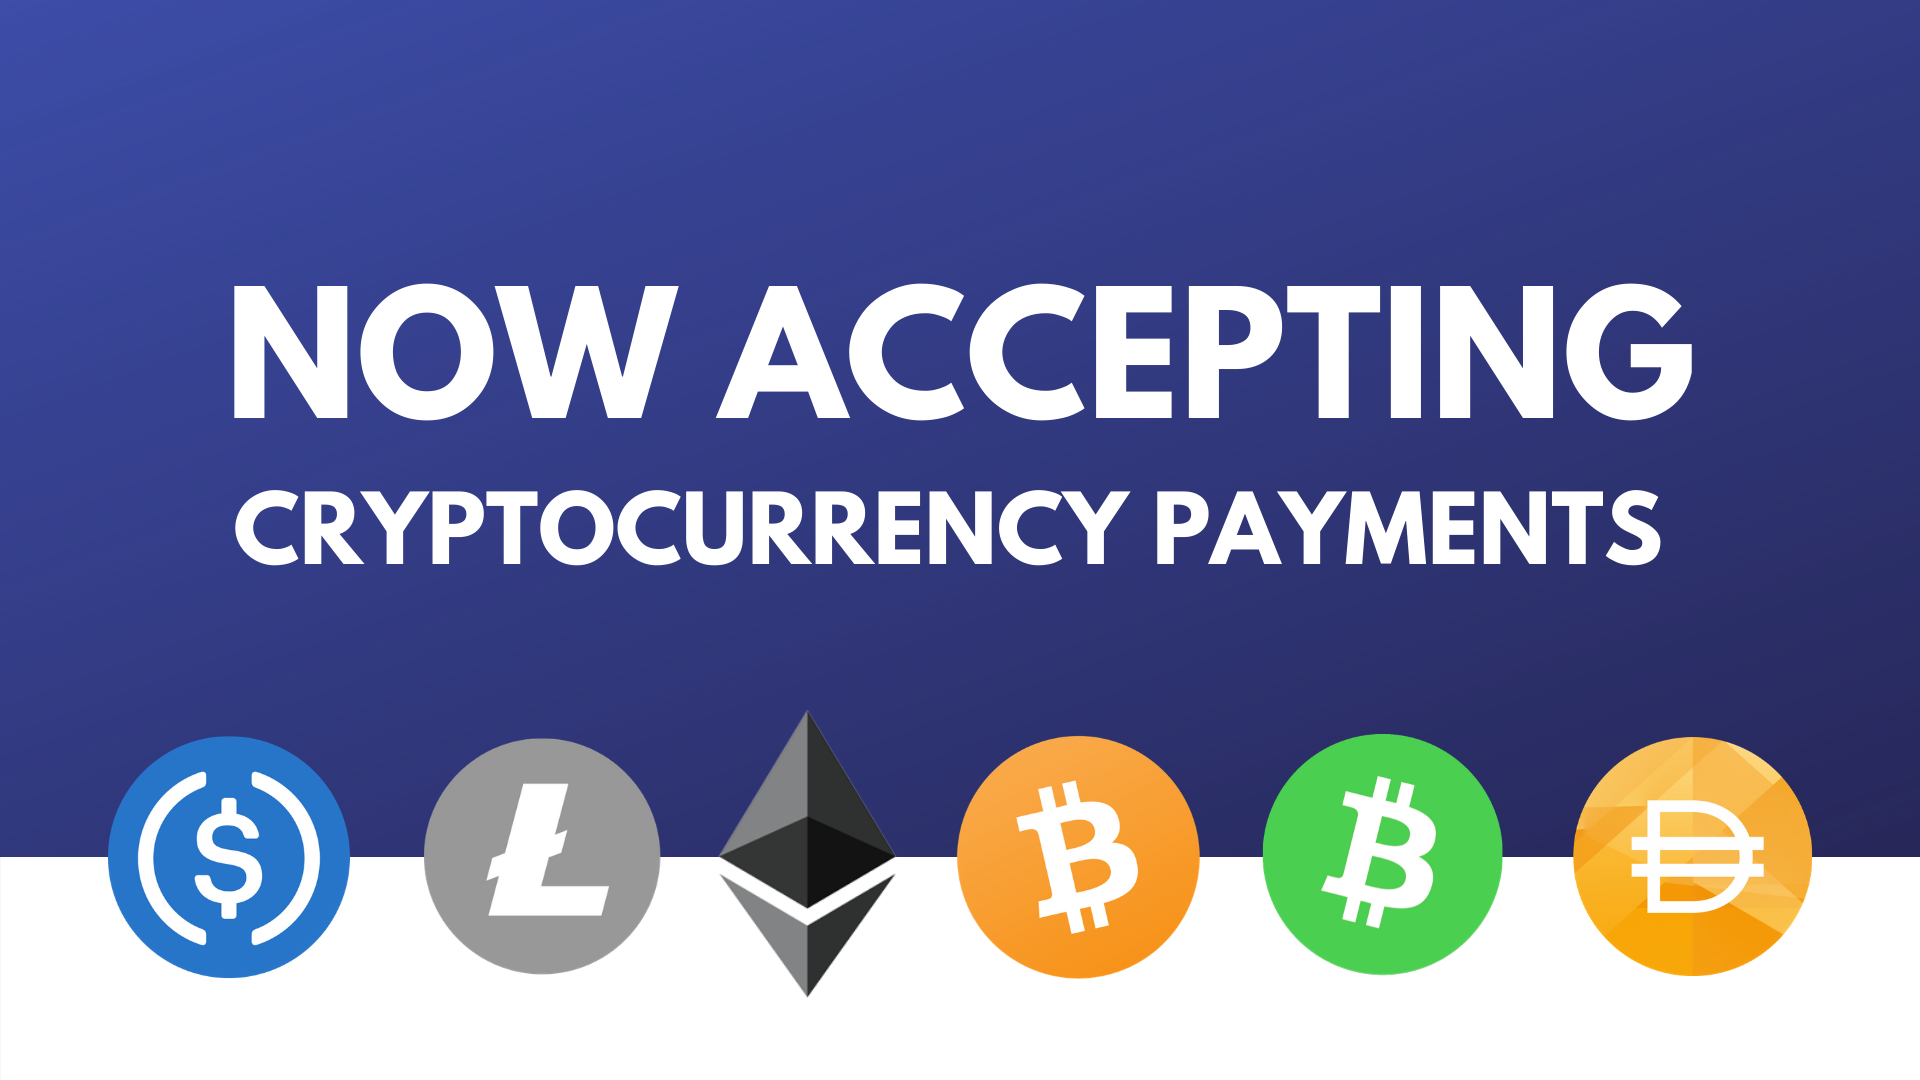 Now Accepting Cryptocurrency Payments